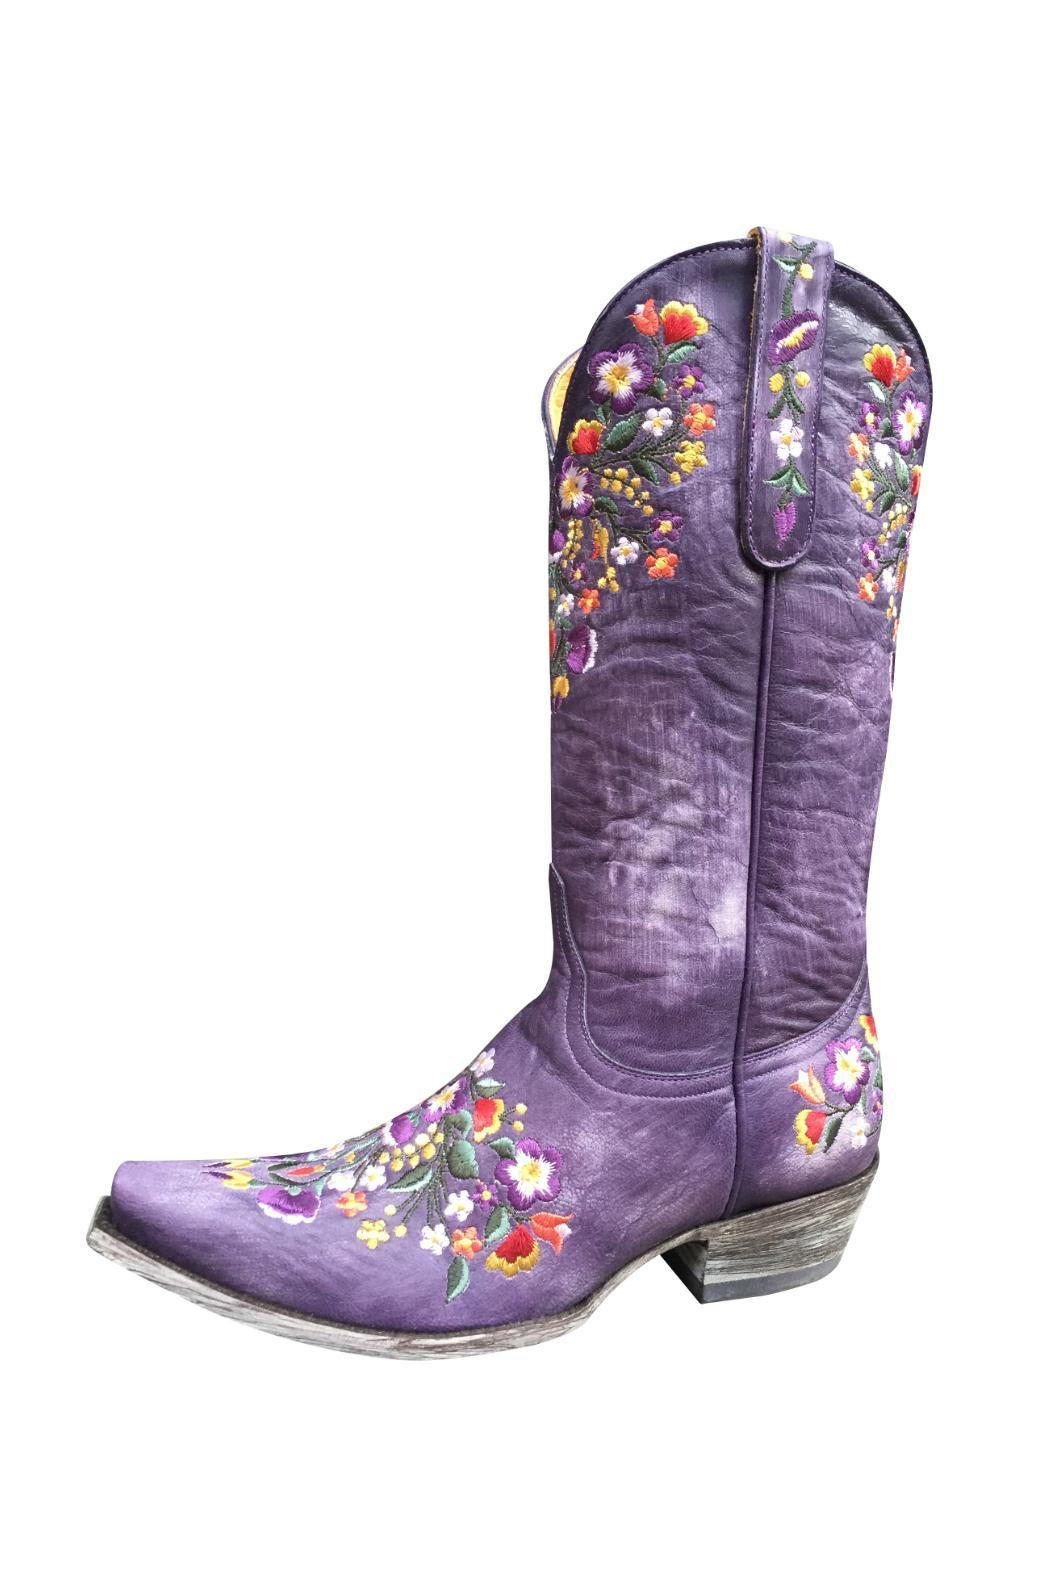 Old Gringo Boots Purple Flower Cowboy Boots From Soho By